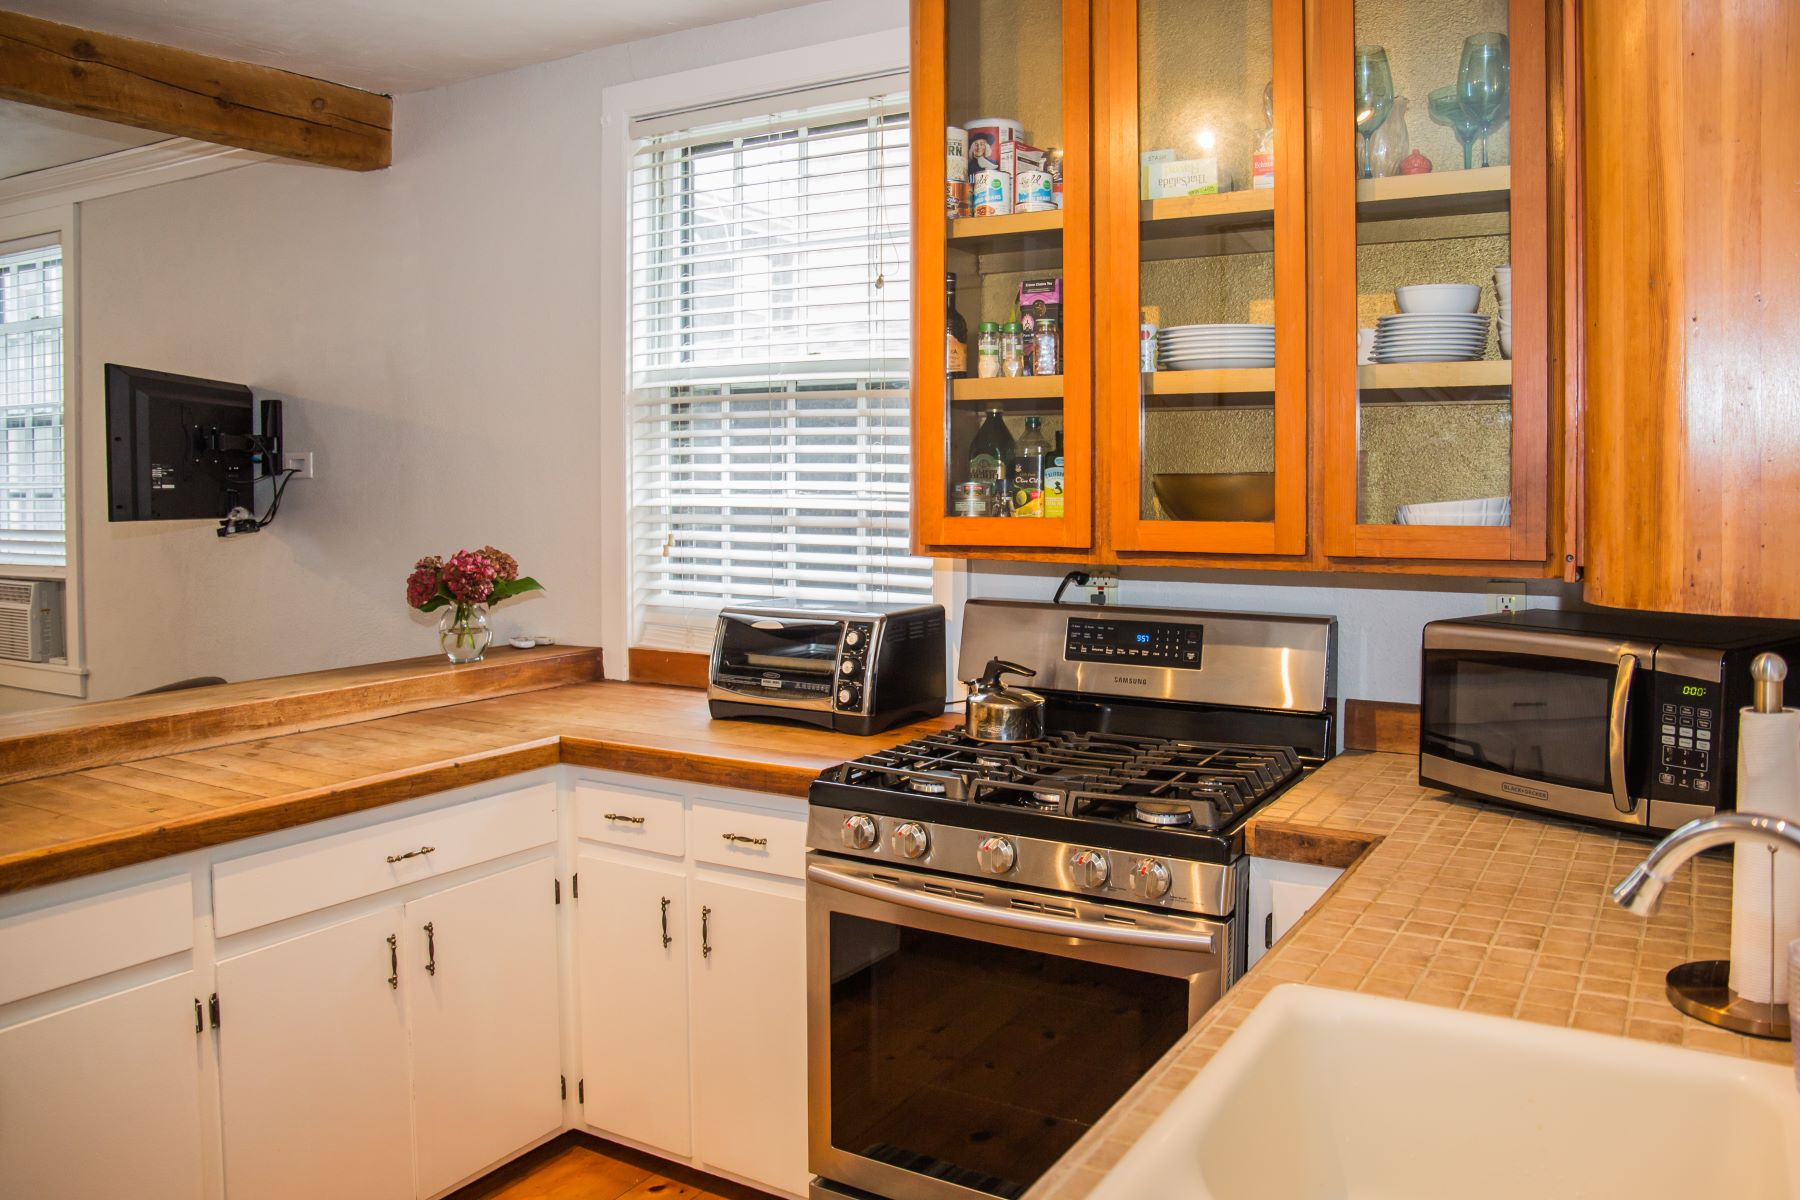 Additional photo for property listing at Corkscrew Cottage 5 Stewart Street Newport, Rhode Island 02840 United States